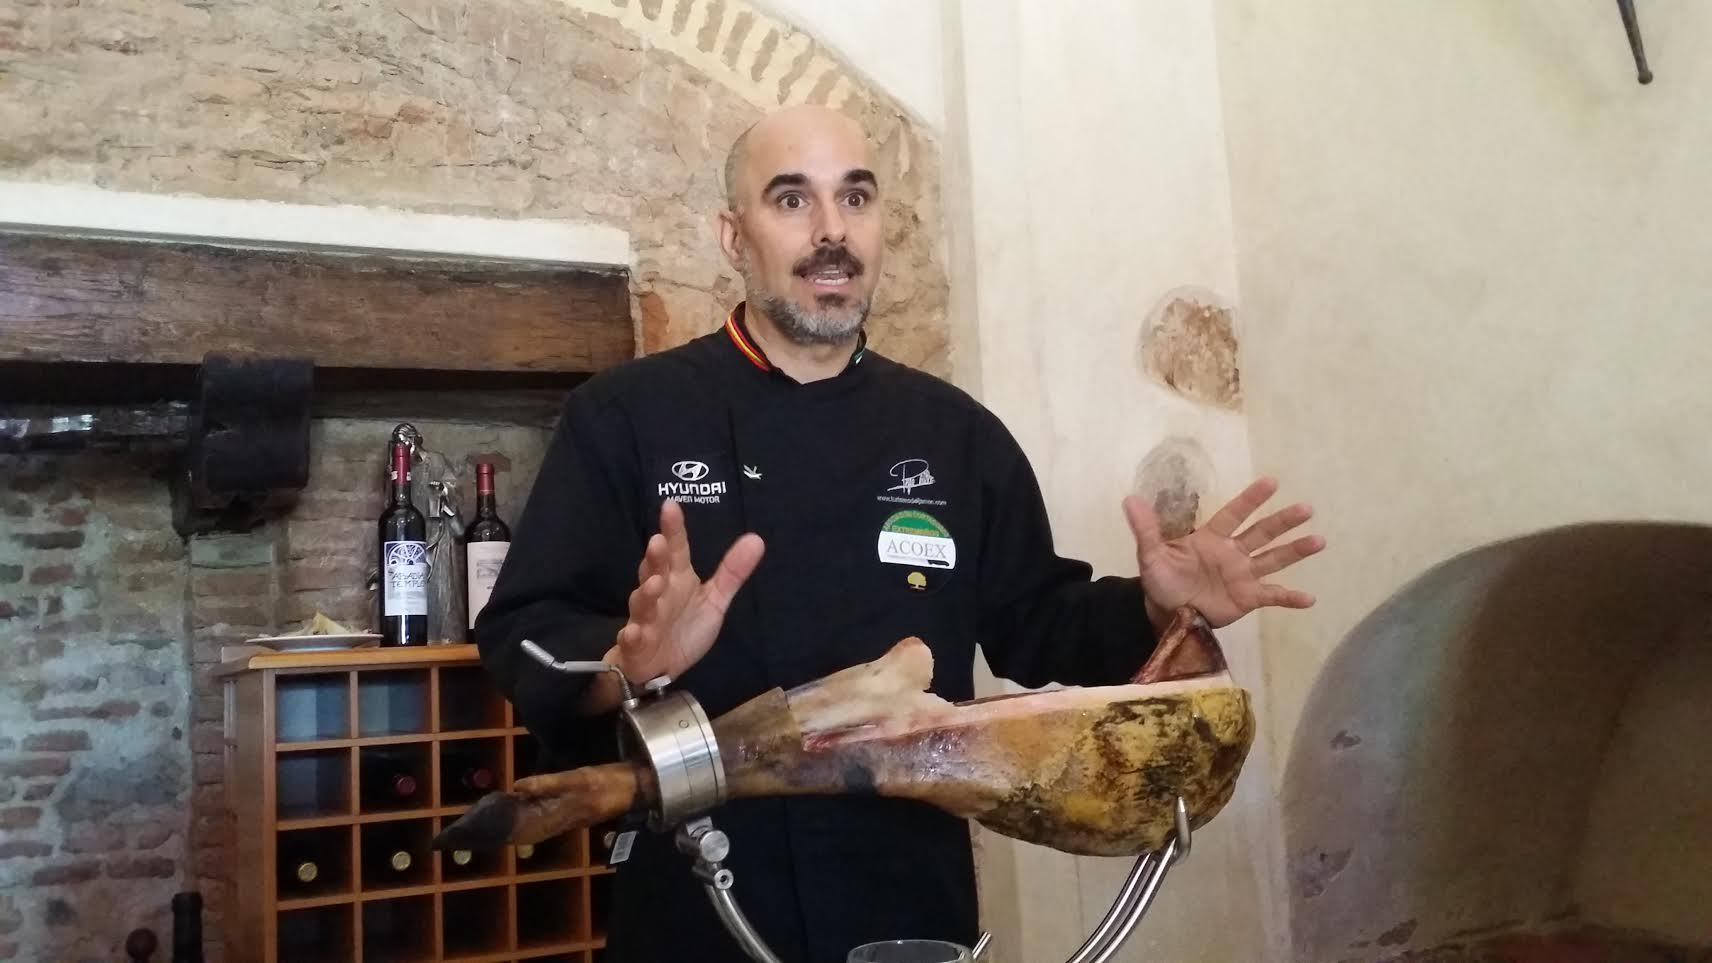 A Lesson on How to Properly Slice The Jamon!